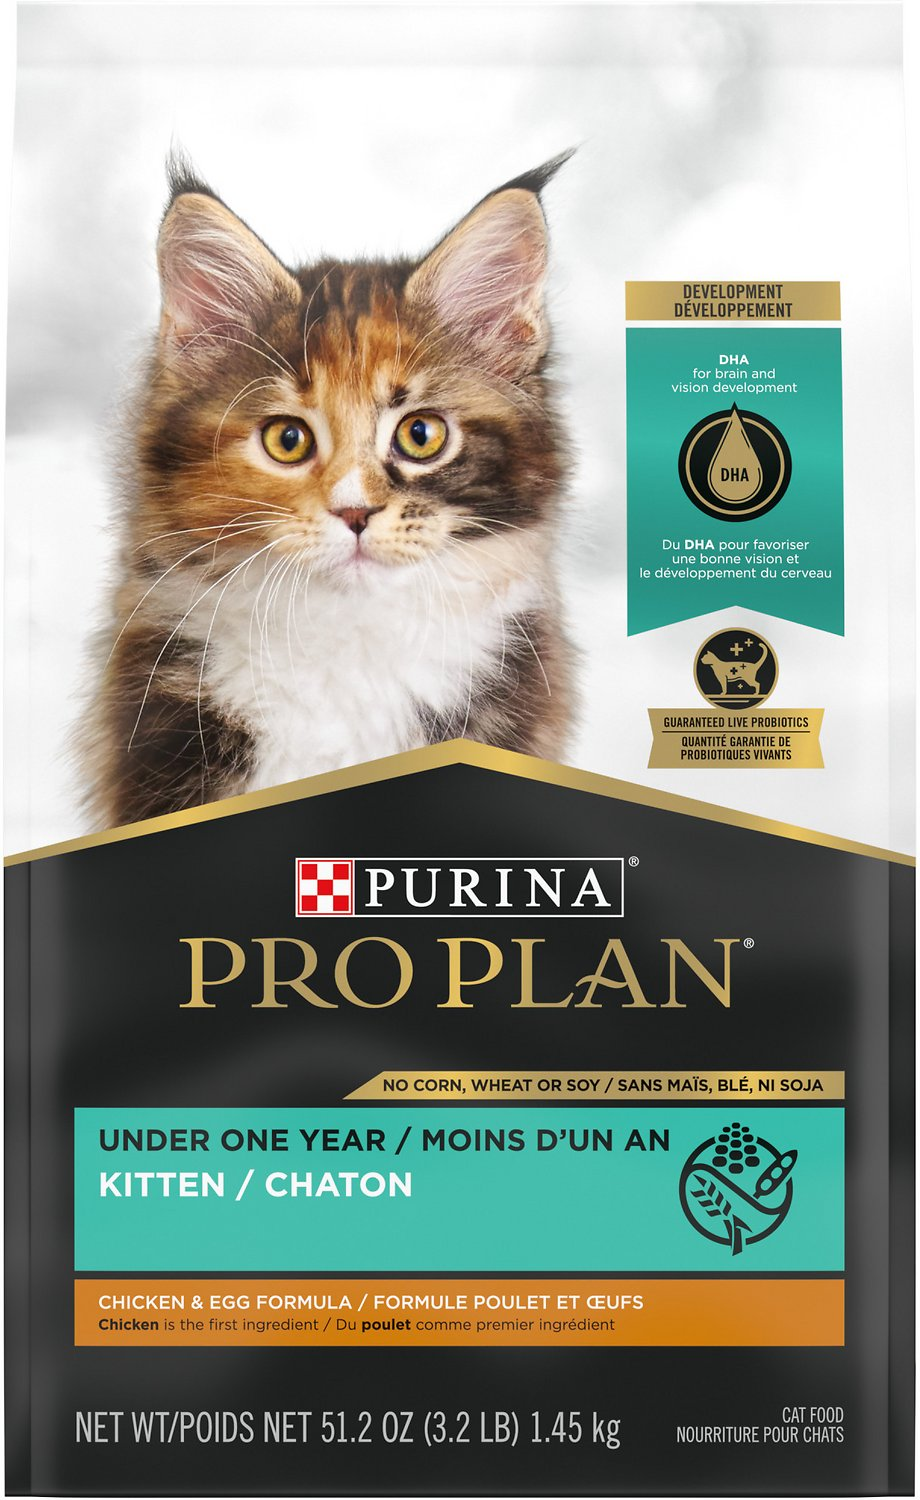 Purina pro plan true nature kitten chicken egg recipe grain free roll over image to zoom in forumfinder Gallery